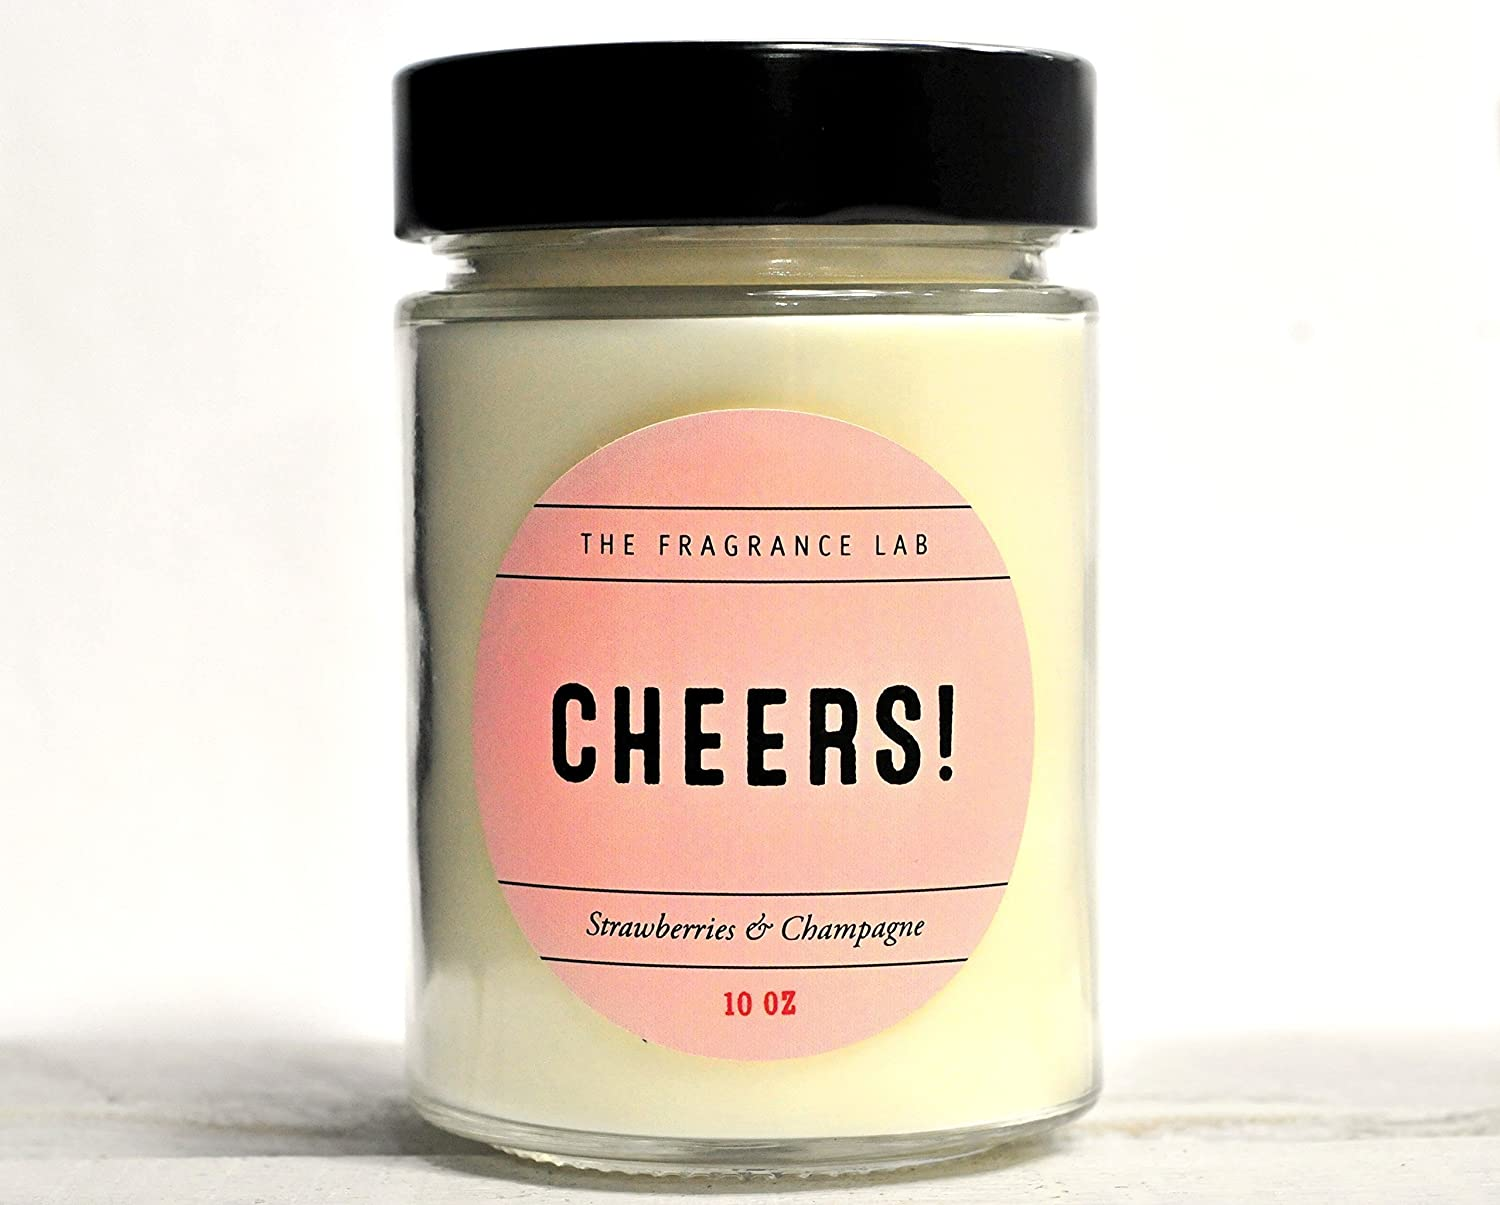 Soy Candles -Cheers! Strawberries & Champagne Scented | The Fragrance Lab